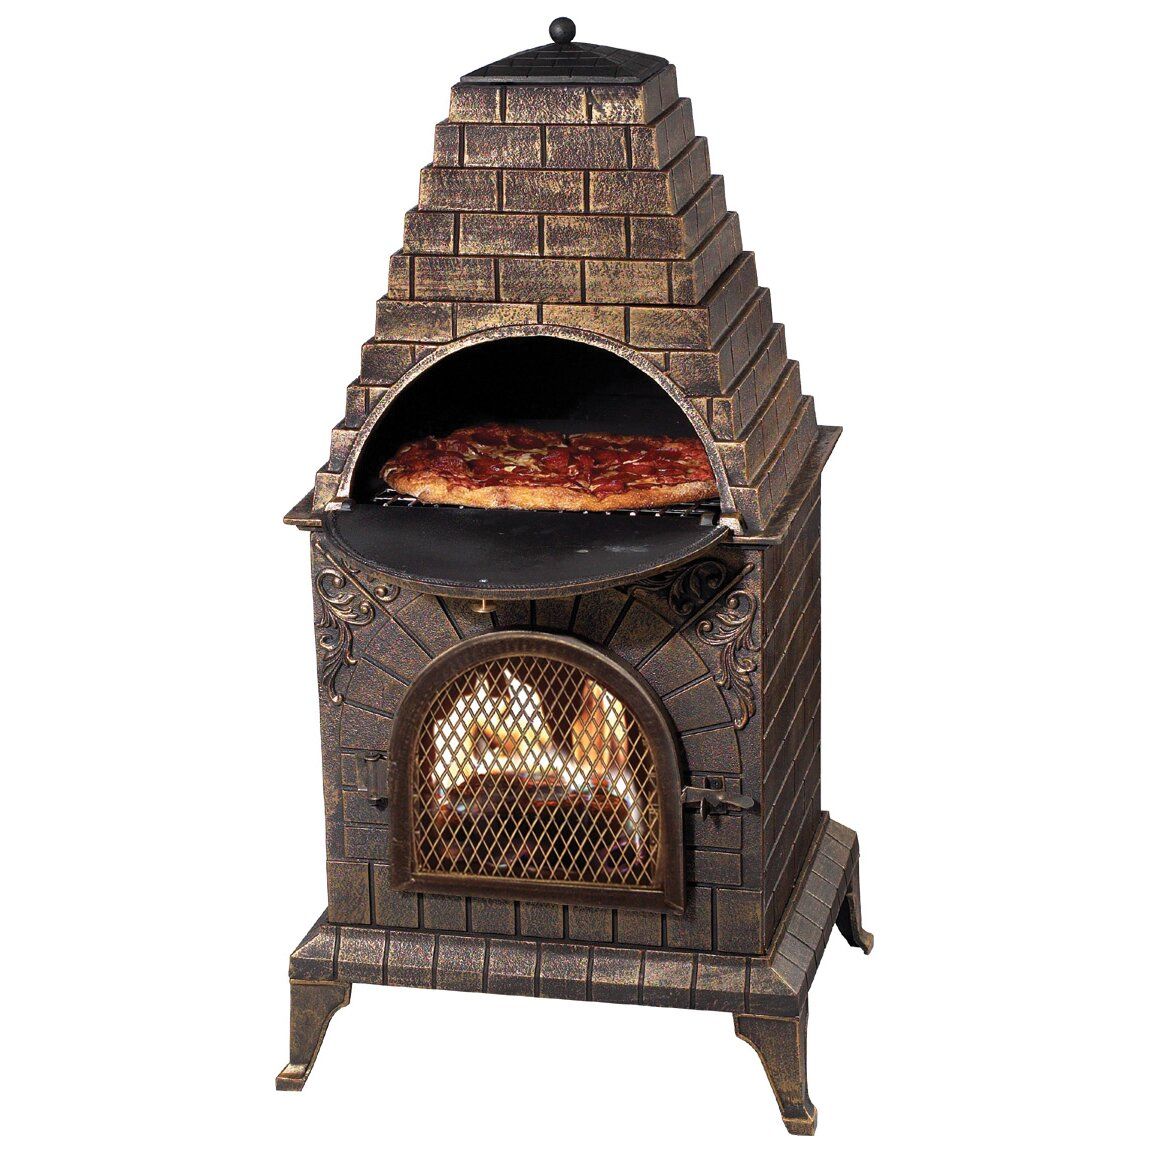 Deeco Aztec Allure Pizza Oven Outdoor Fireplace & Reviews ... on Outdoor Patio With Pizza Oven id=30507